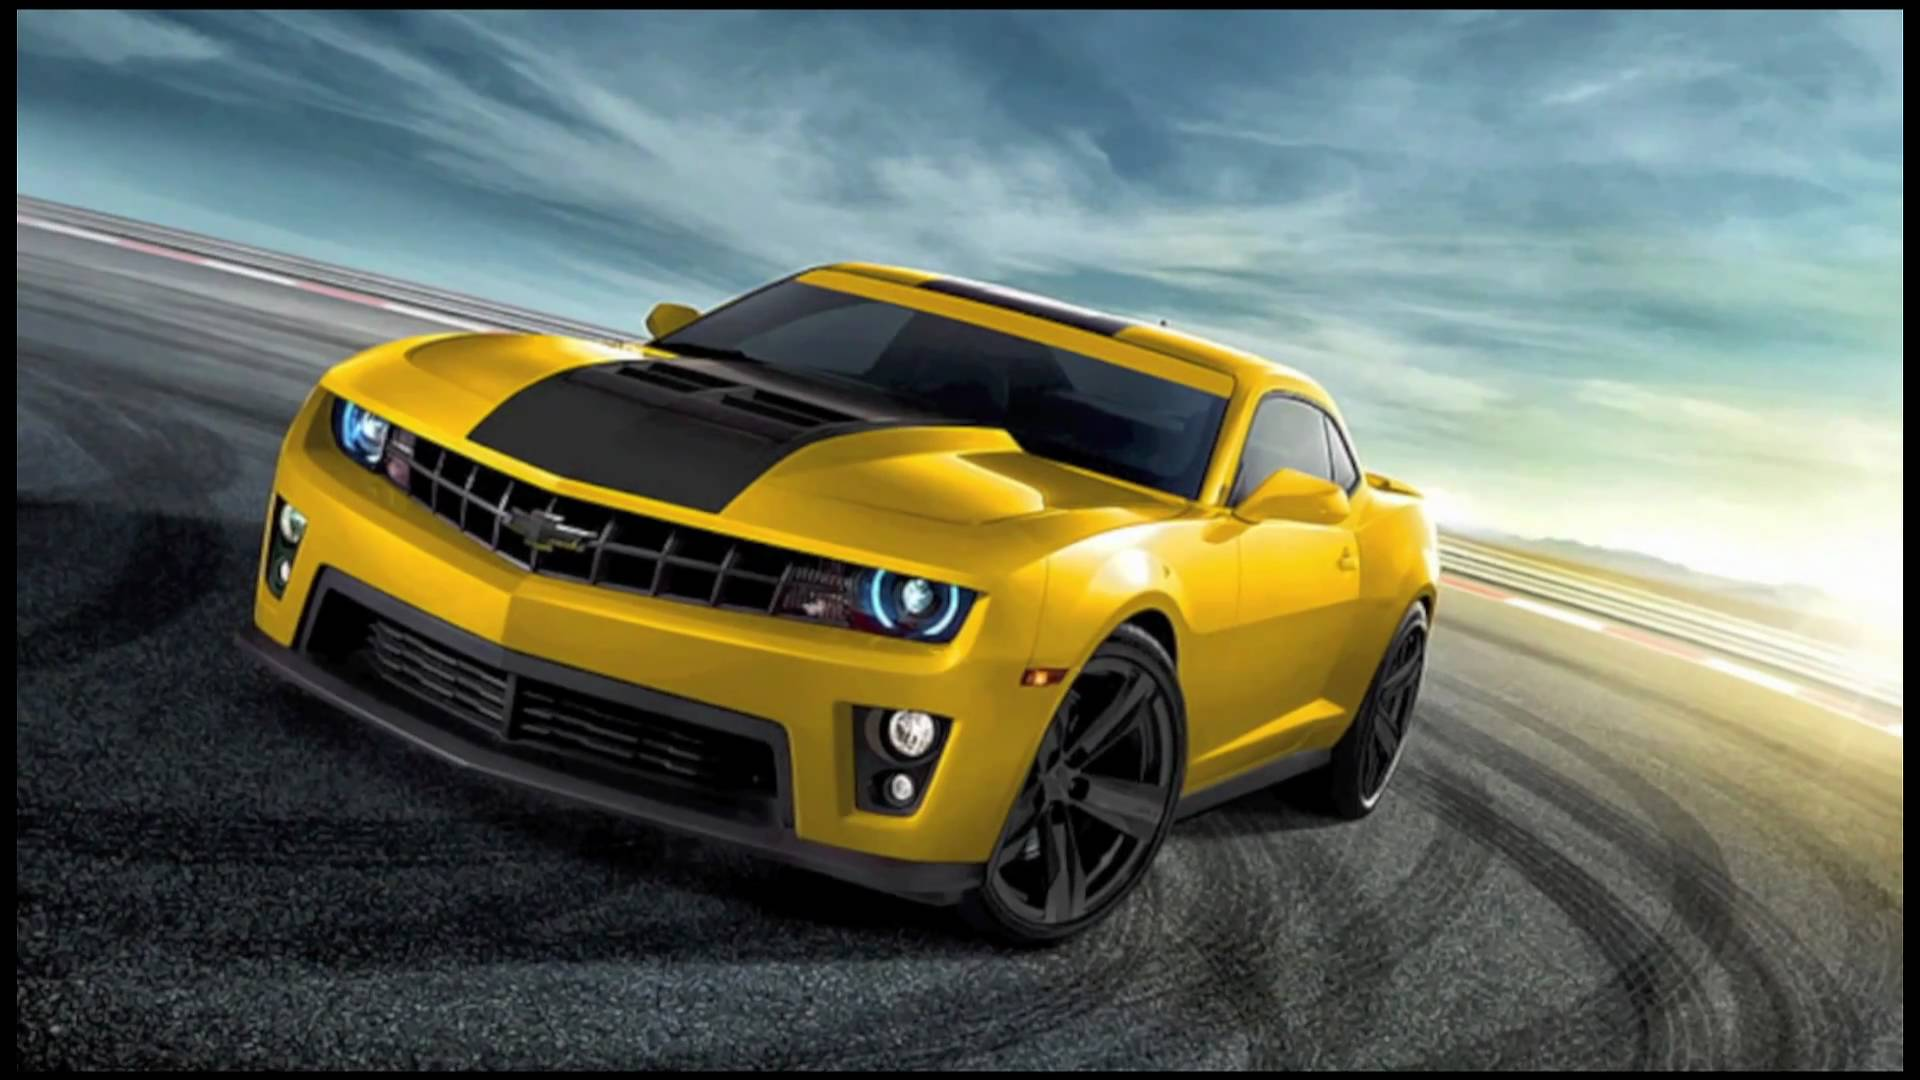 Chevy Camaro ZL1 HD Desktop Wallpapers 7wallpapersnet 1920x1080